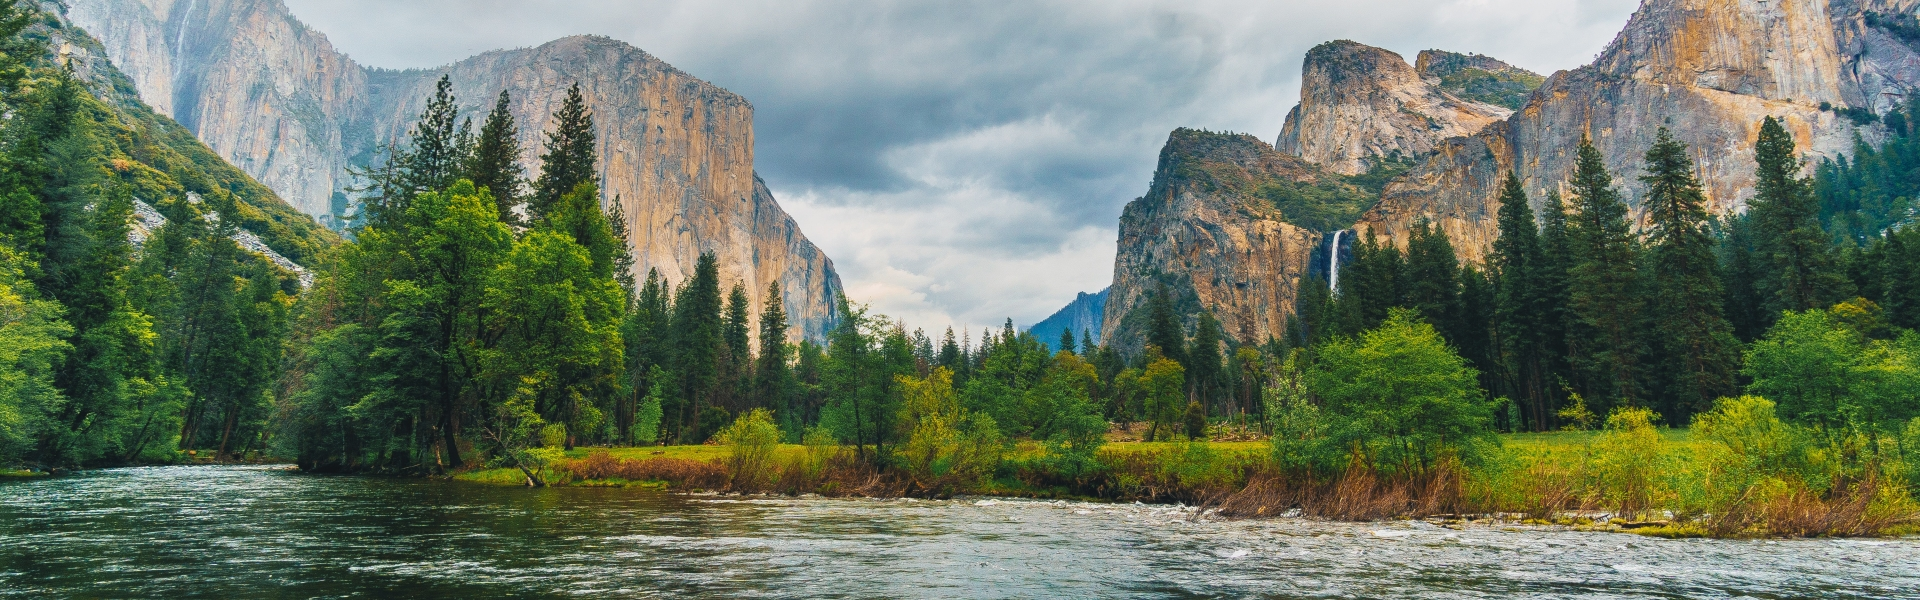 River flows by trees and Yosemite mountains